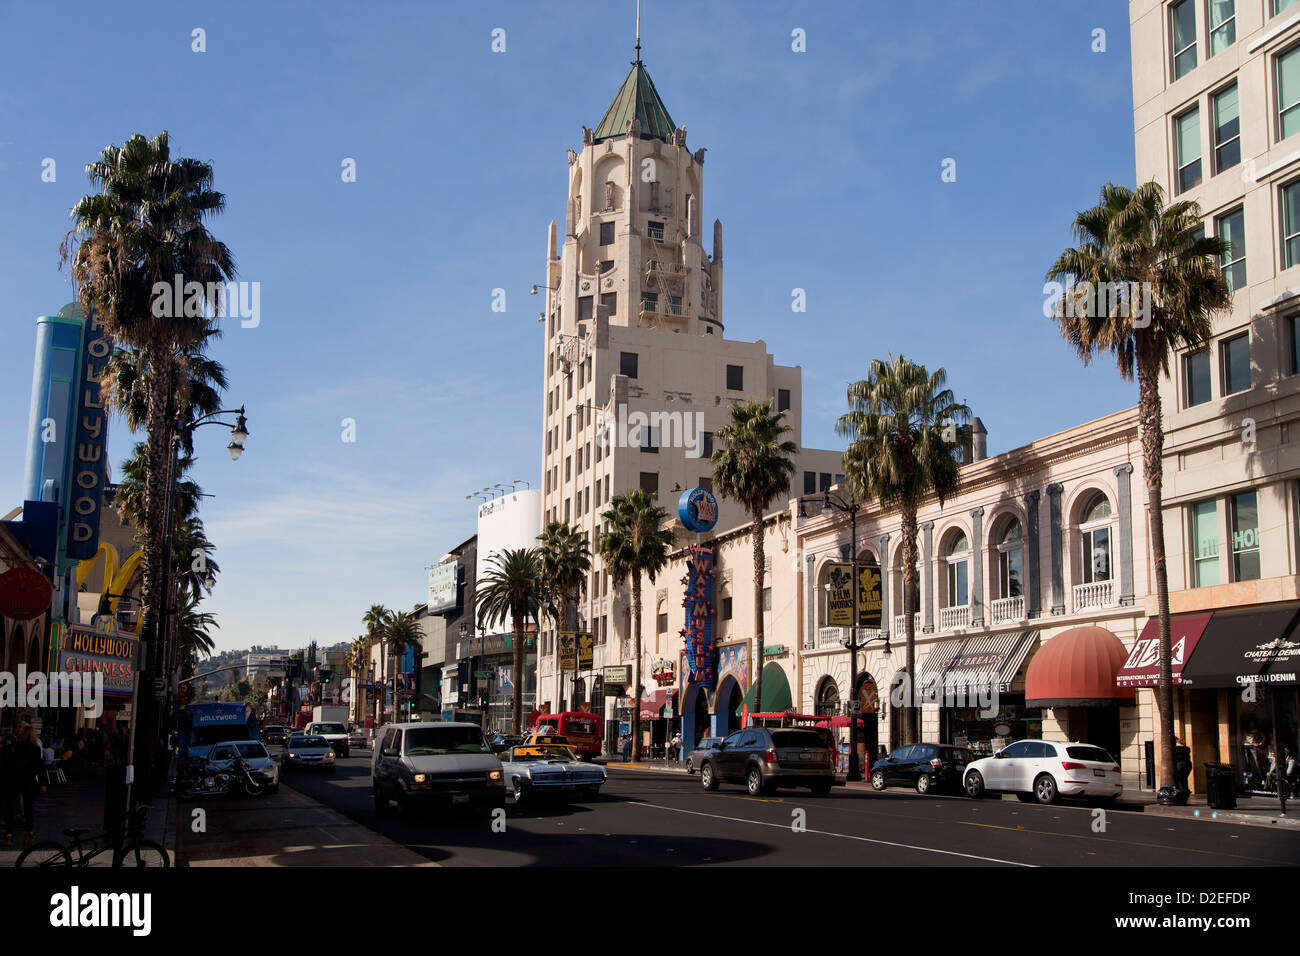 traffic on Hollywood Boulevard in Hollywood, Los Angeles, California, United States of America, USA - Stock Image